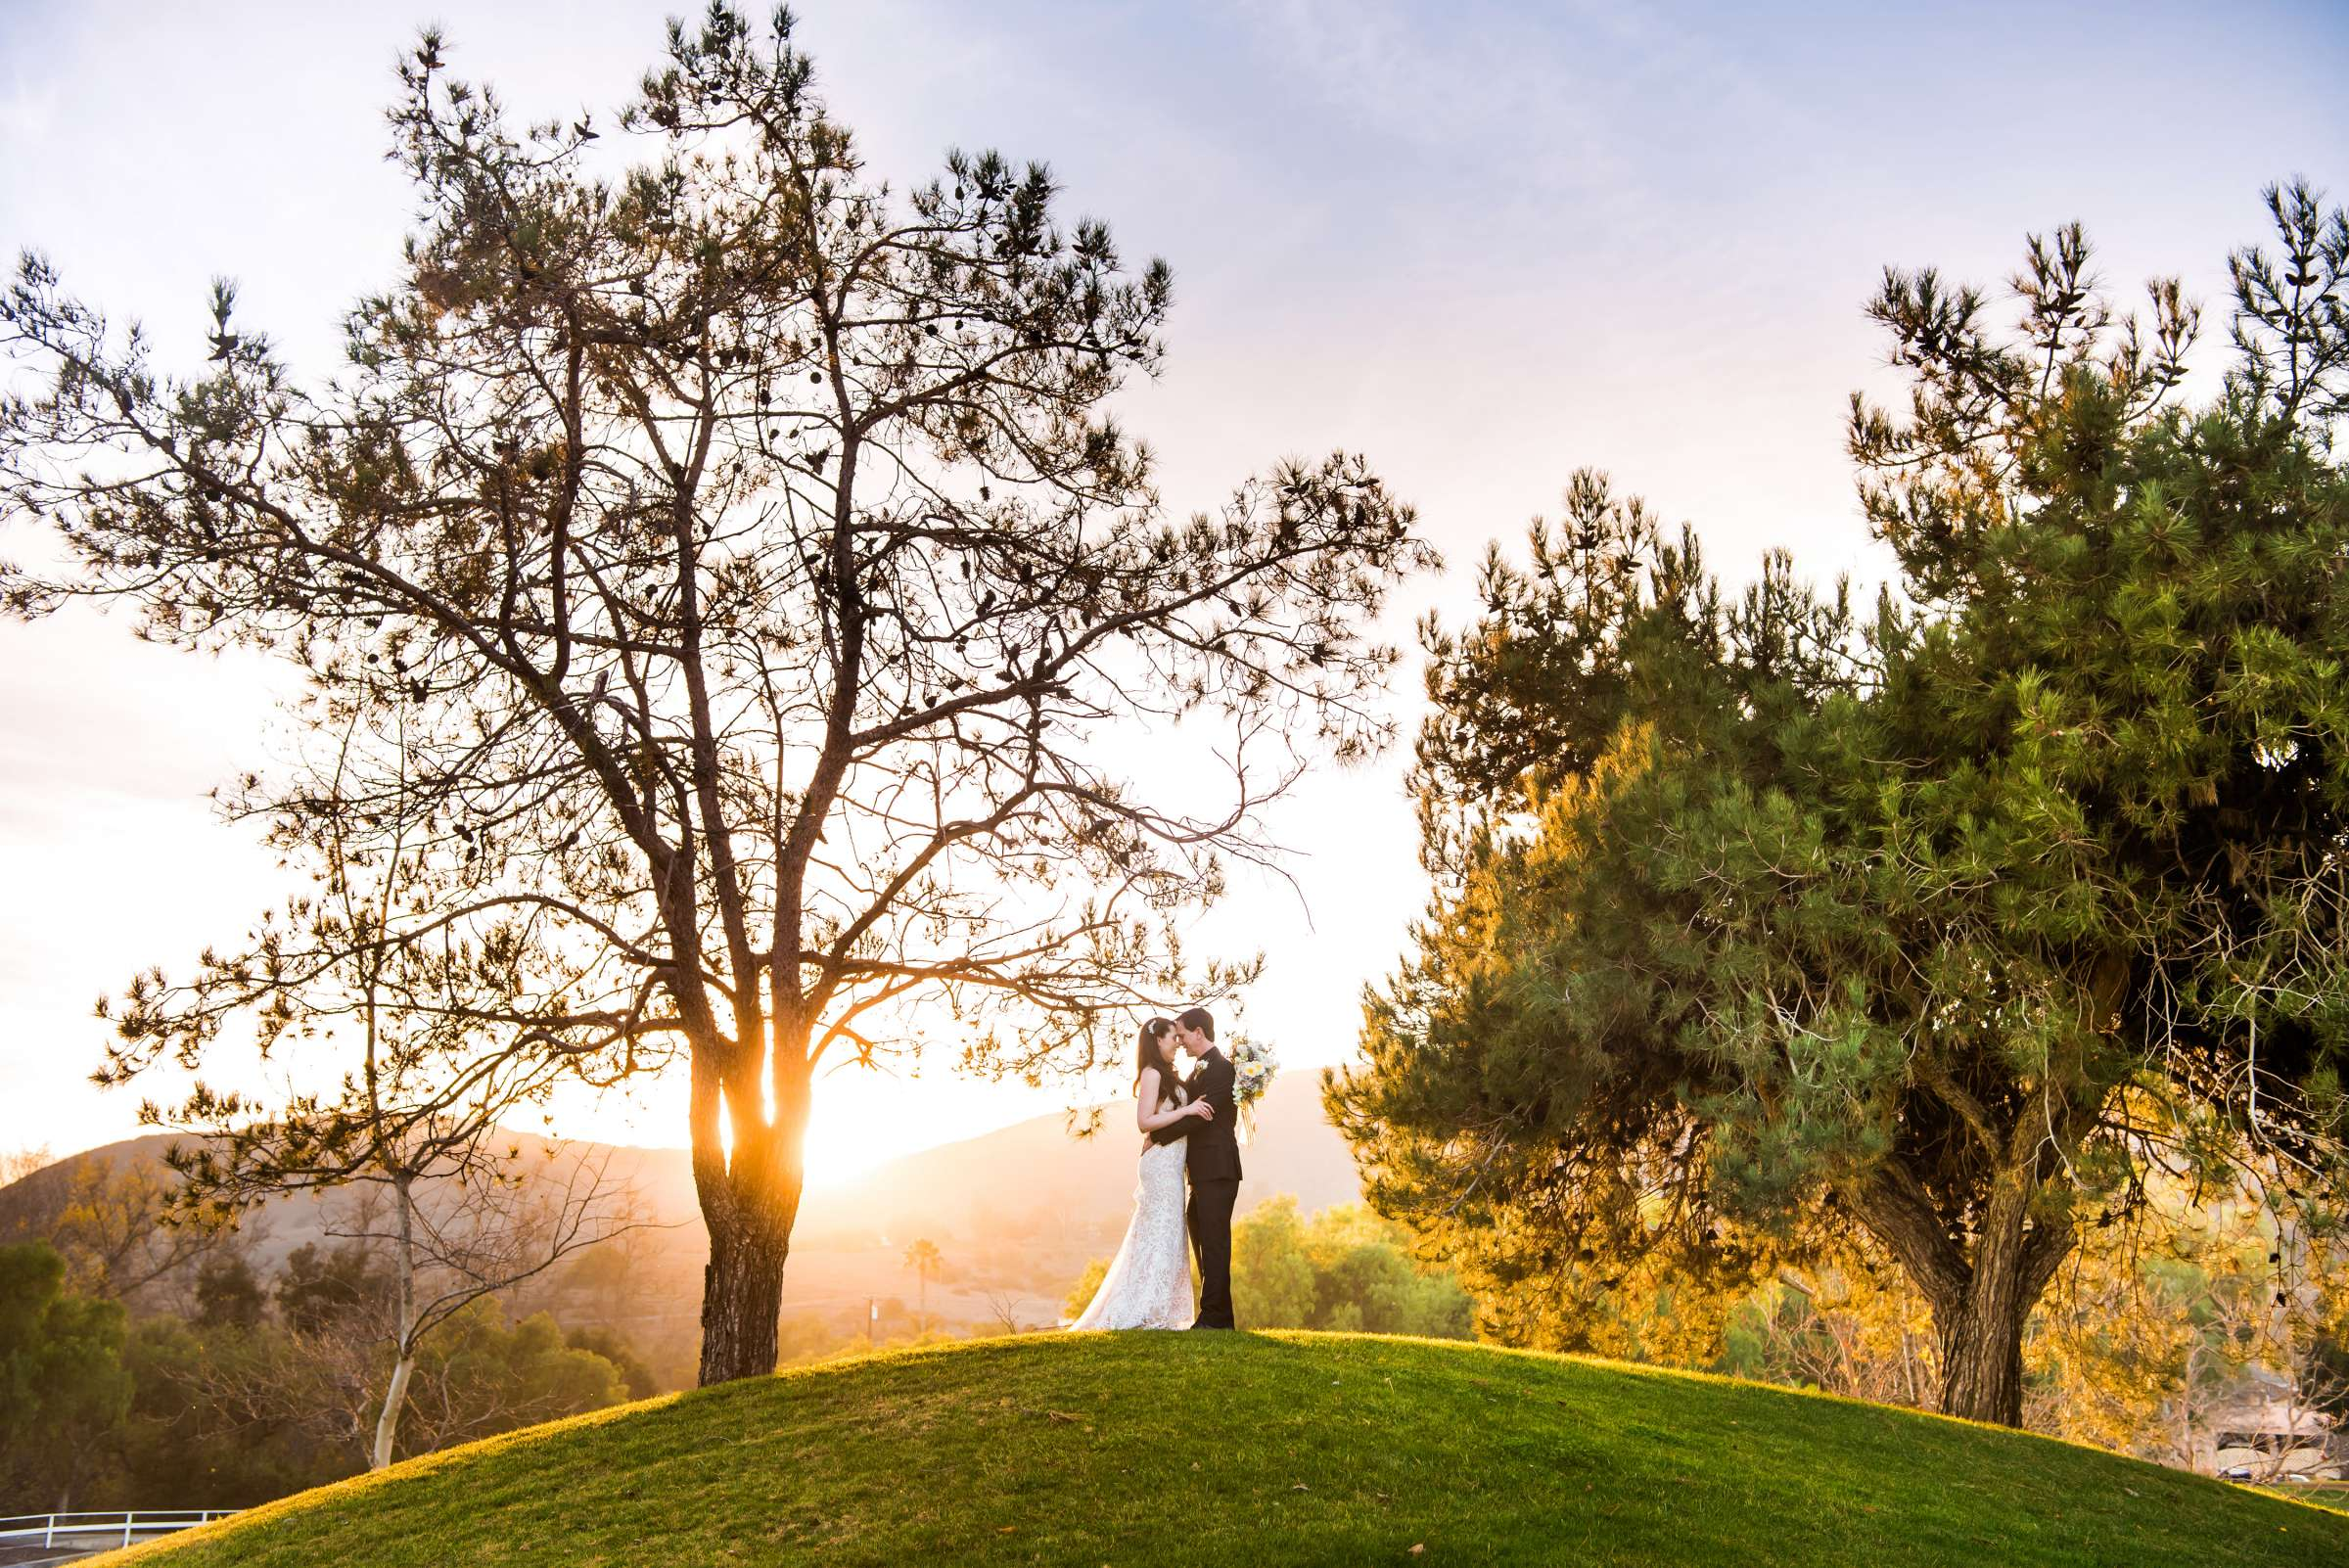 Twin Oaks Golf Course Wedding, Monique and Paul Wedding Photo #1 by True Photography